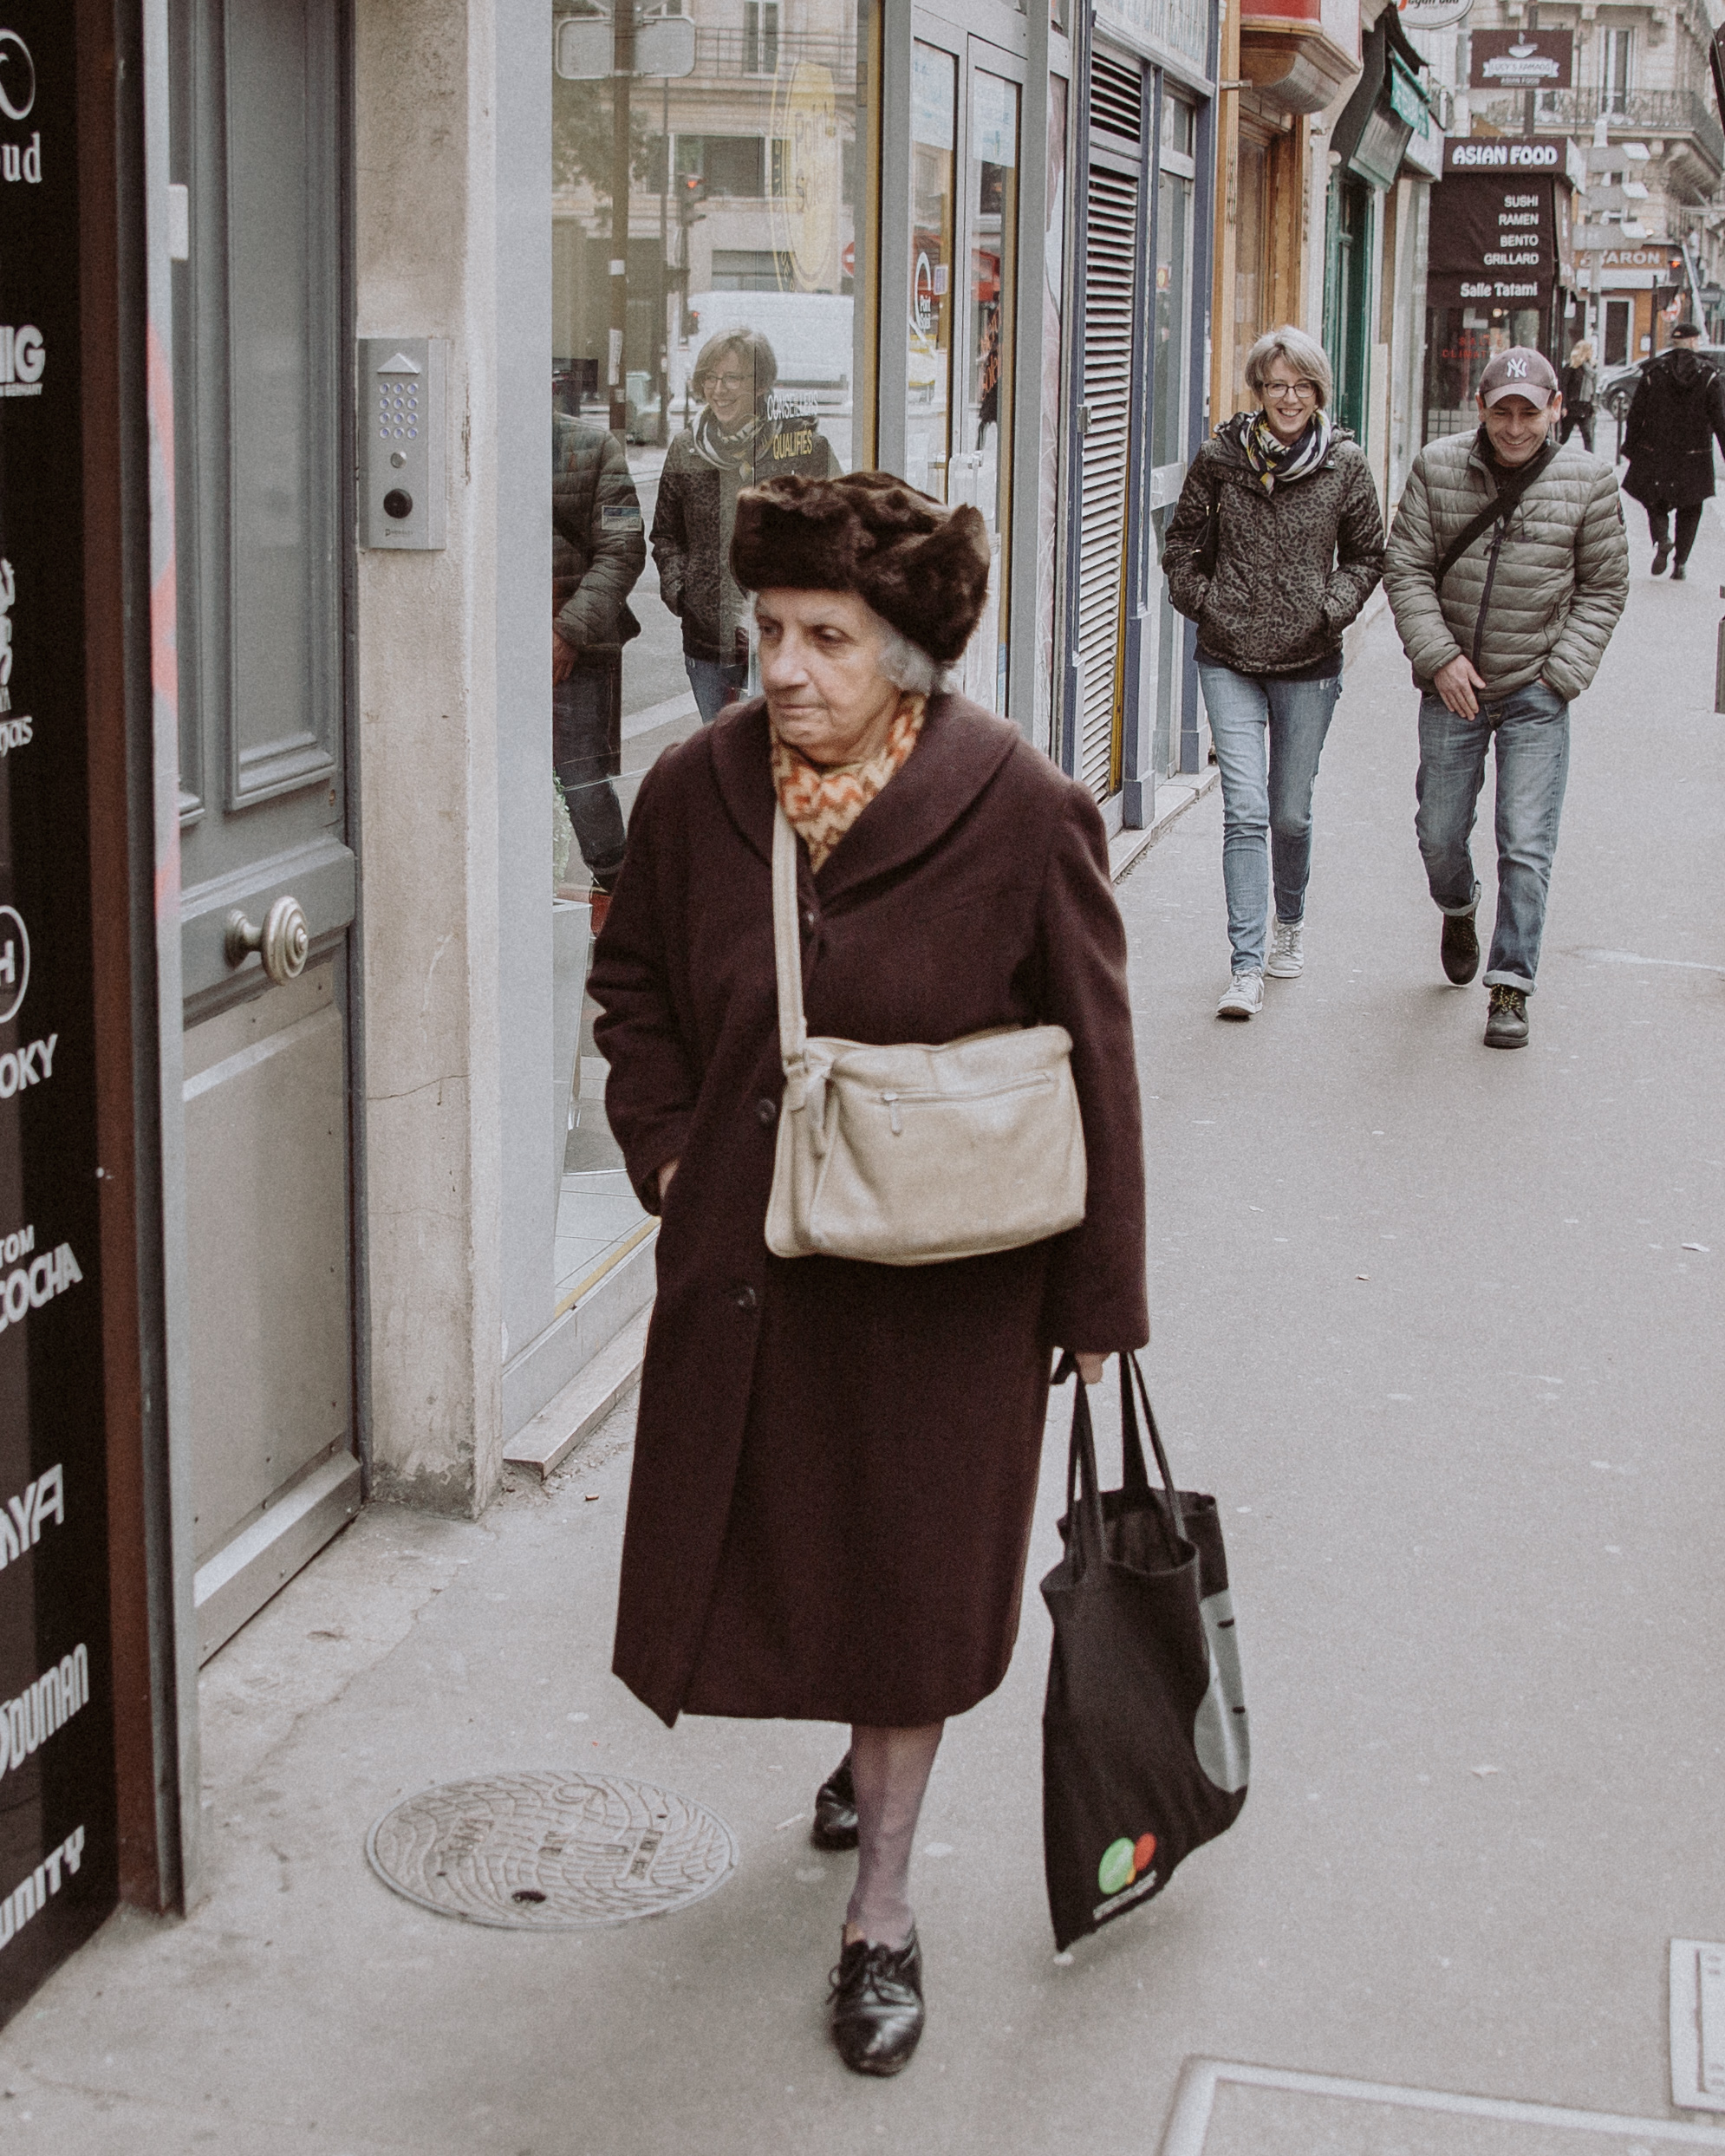 ParisPeople (1 of 19).jpg